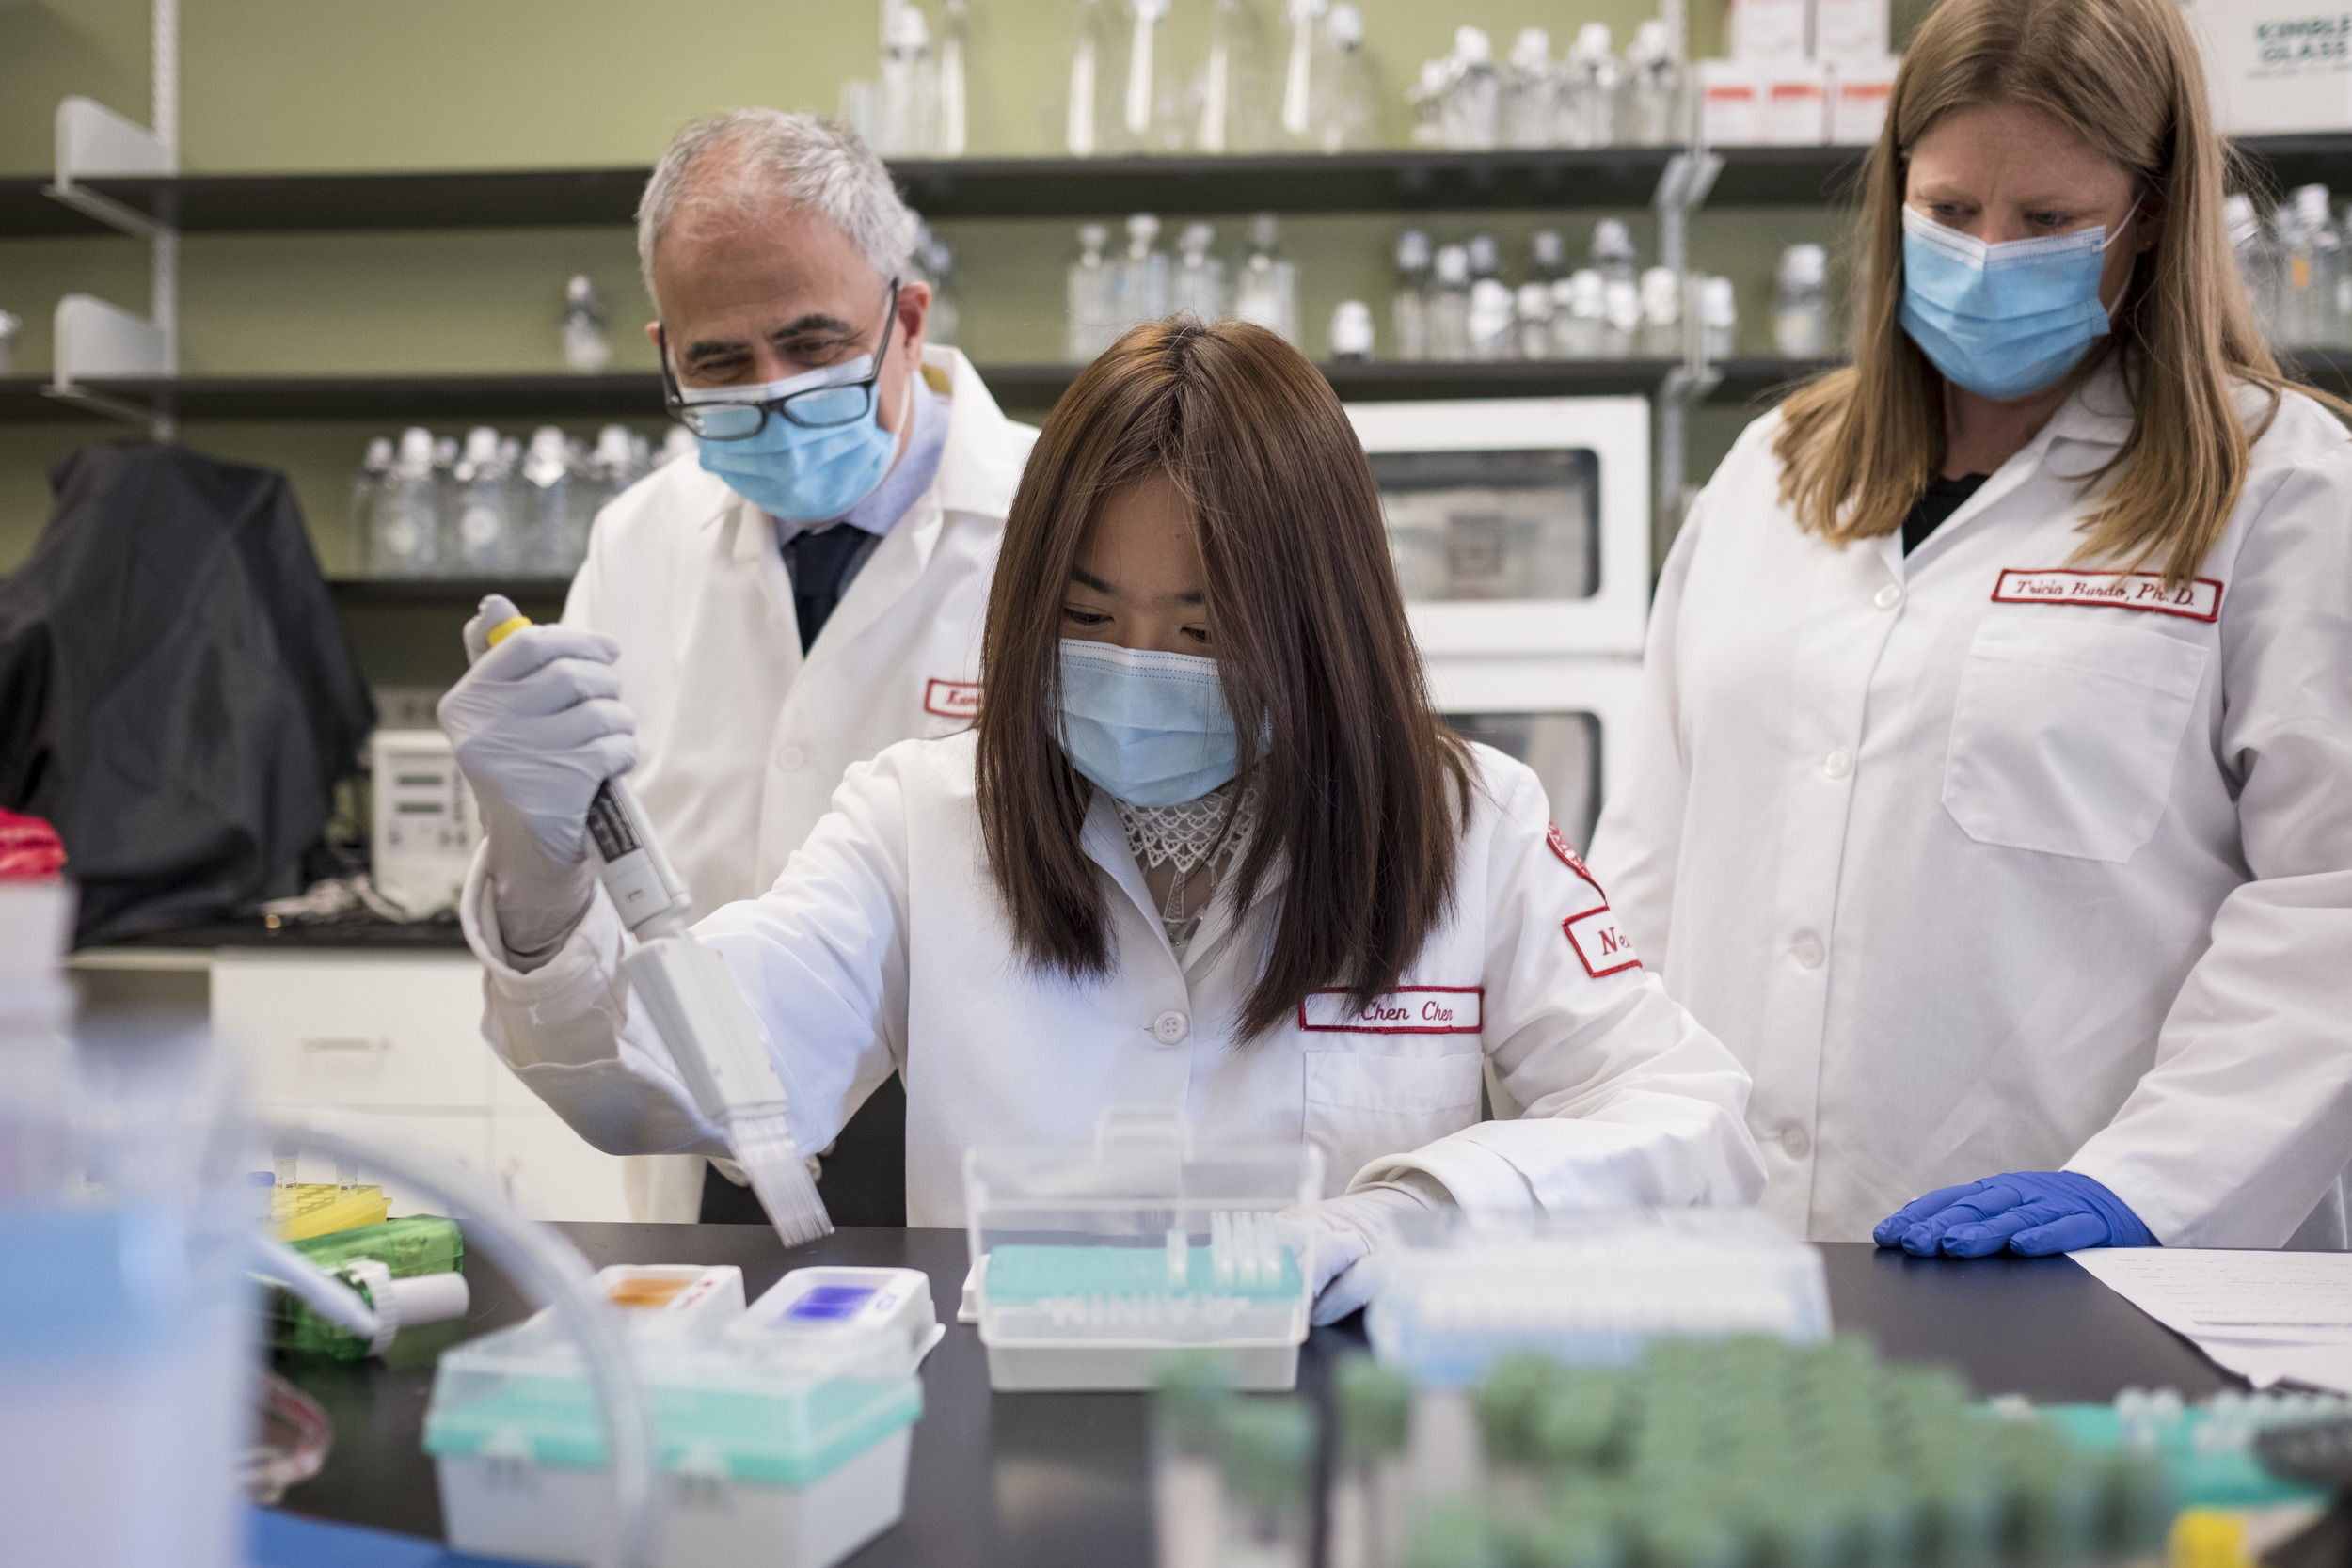 Three researchers wearing white lab coats and wearing masks work together in the lab